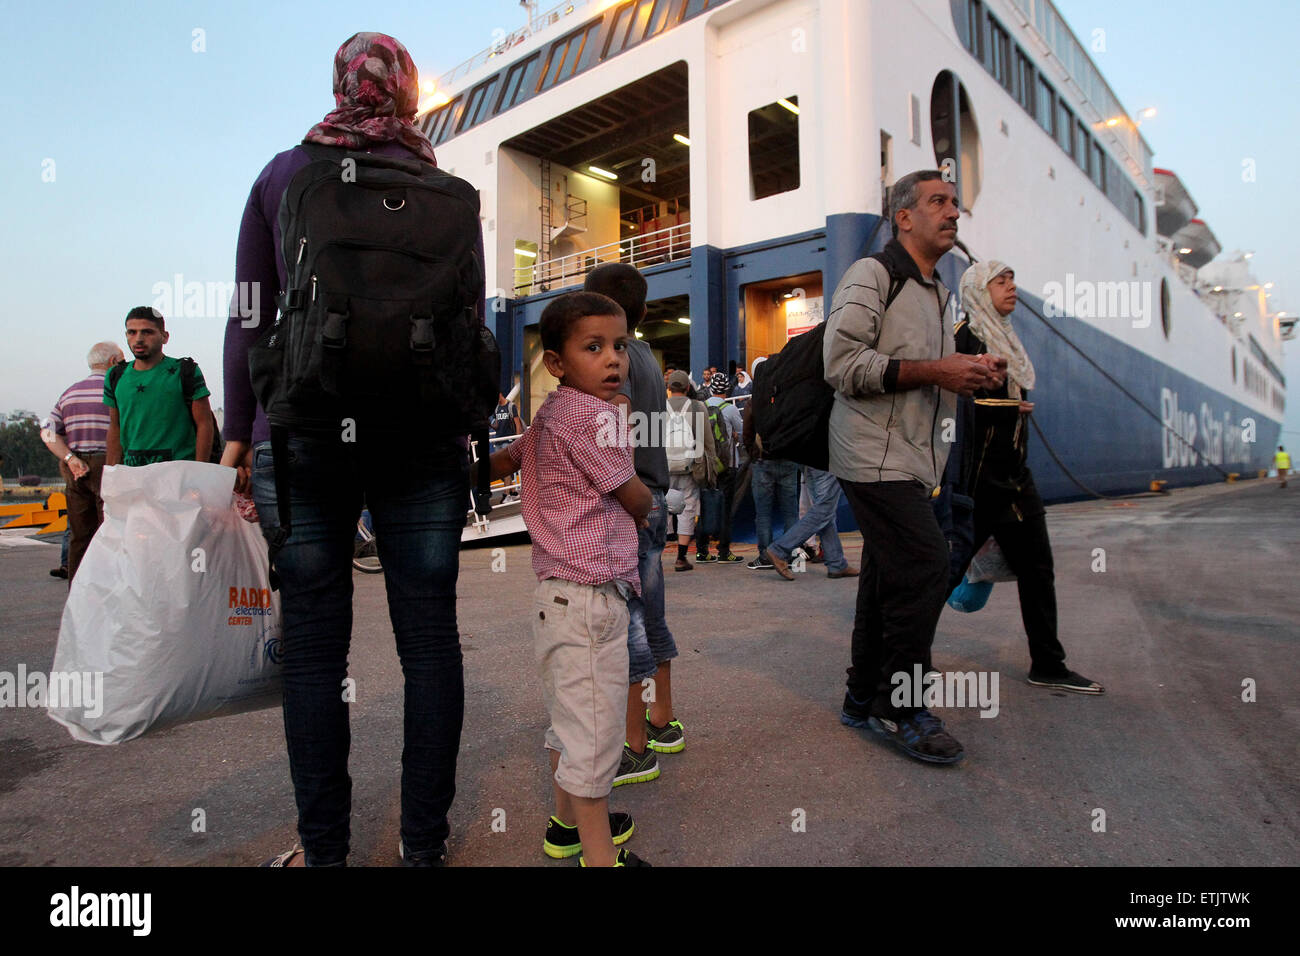 Athens, Greece. 14th June, 2015. Immigrants and refugees arrive at the port of Piraeus near Athens, Greece, June - Stock Image